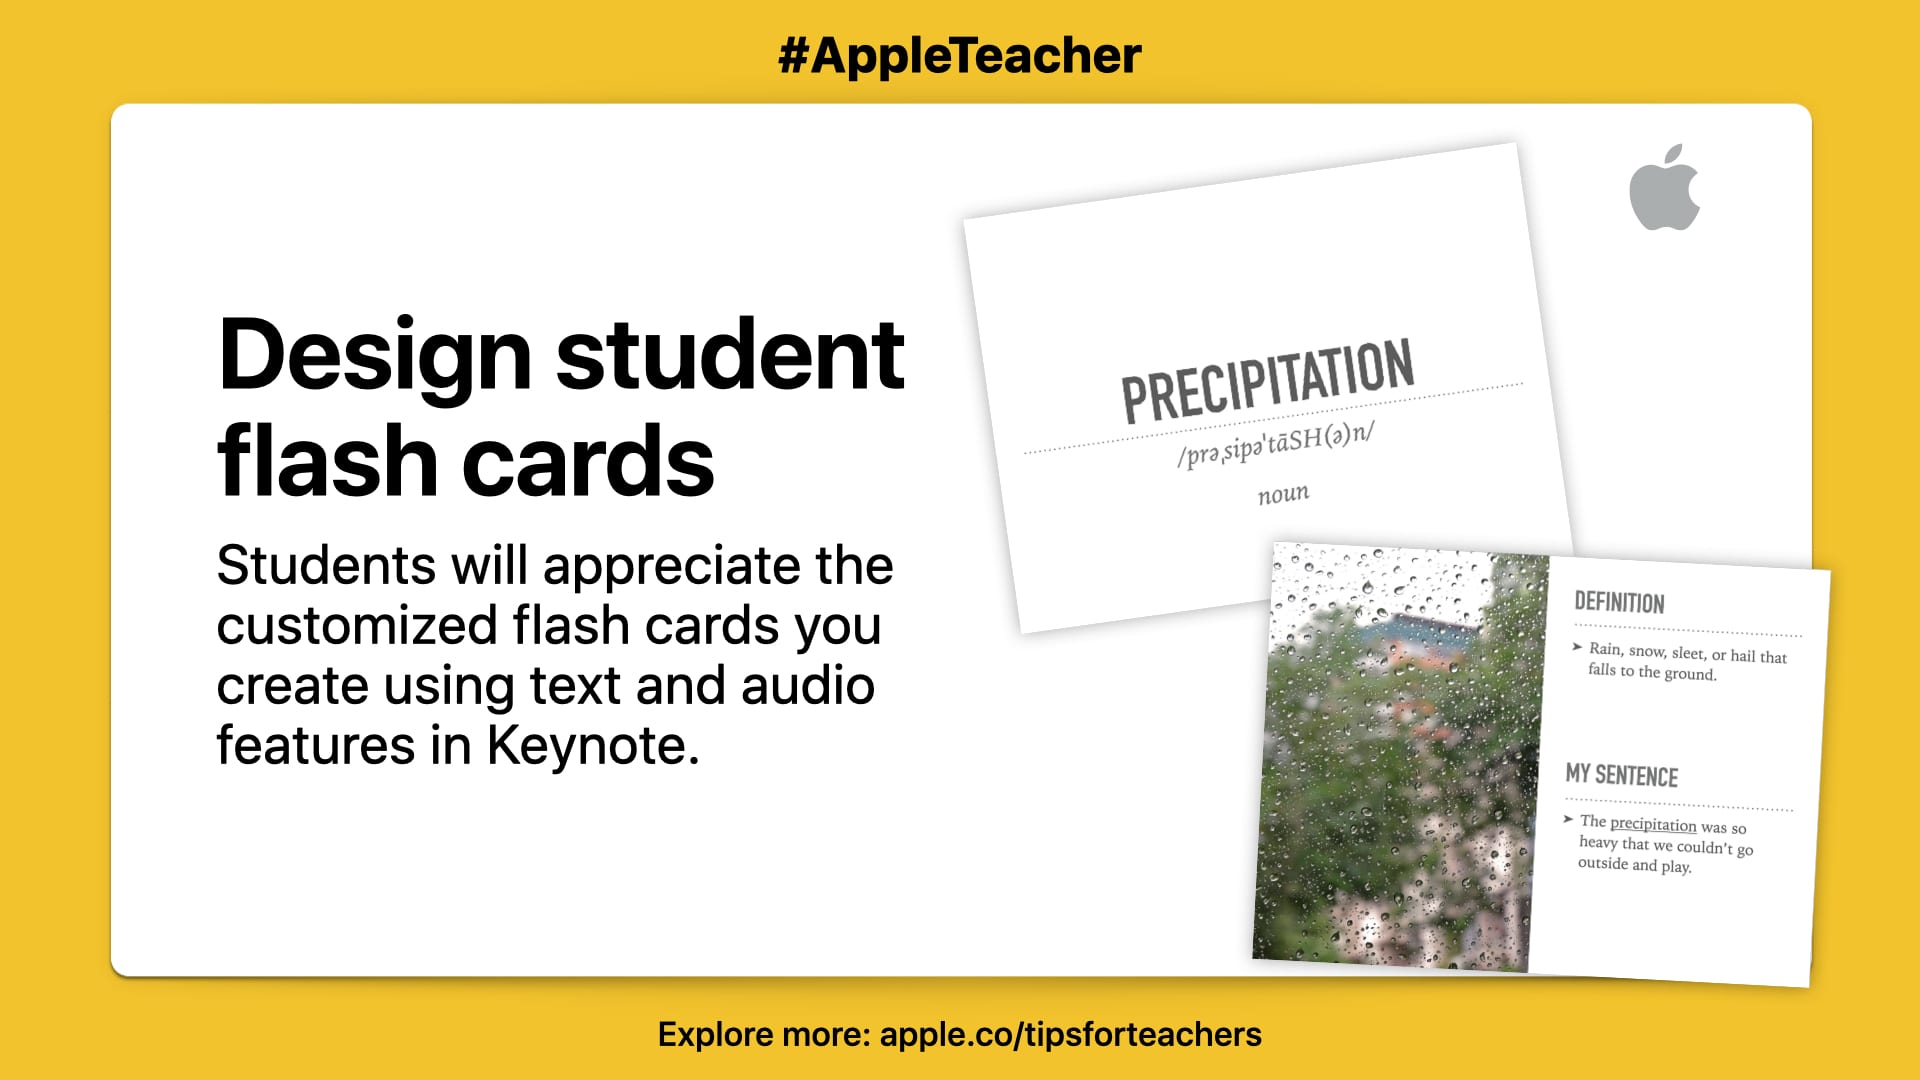 """Students will appreciate the customized flash cards you create using text and audio features in Keynote."" Picture of two flash cards on white background with yellow border."